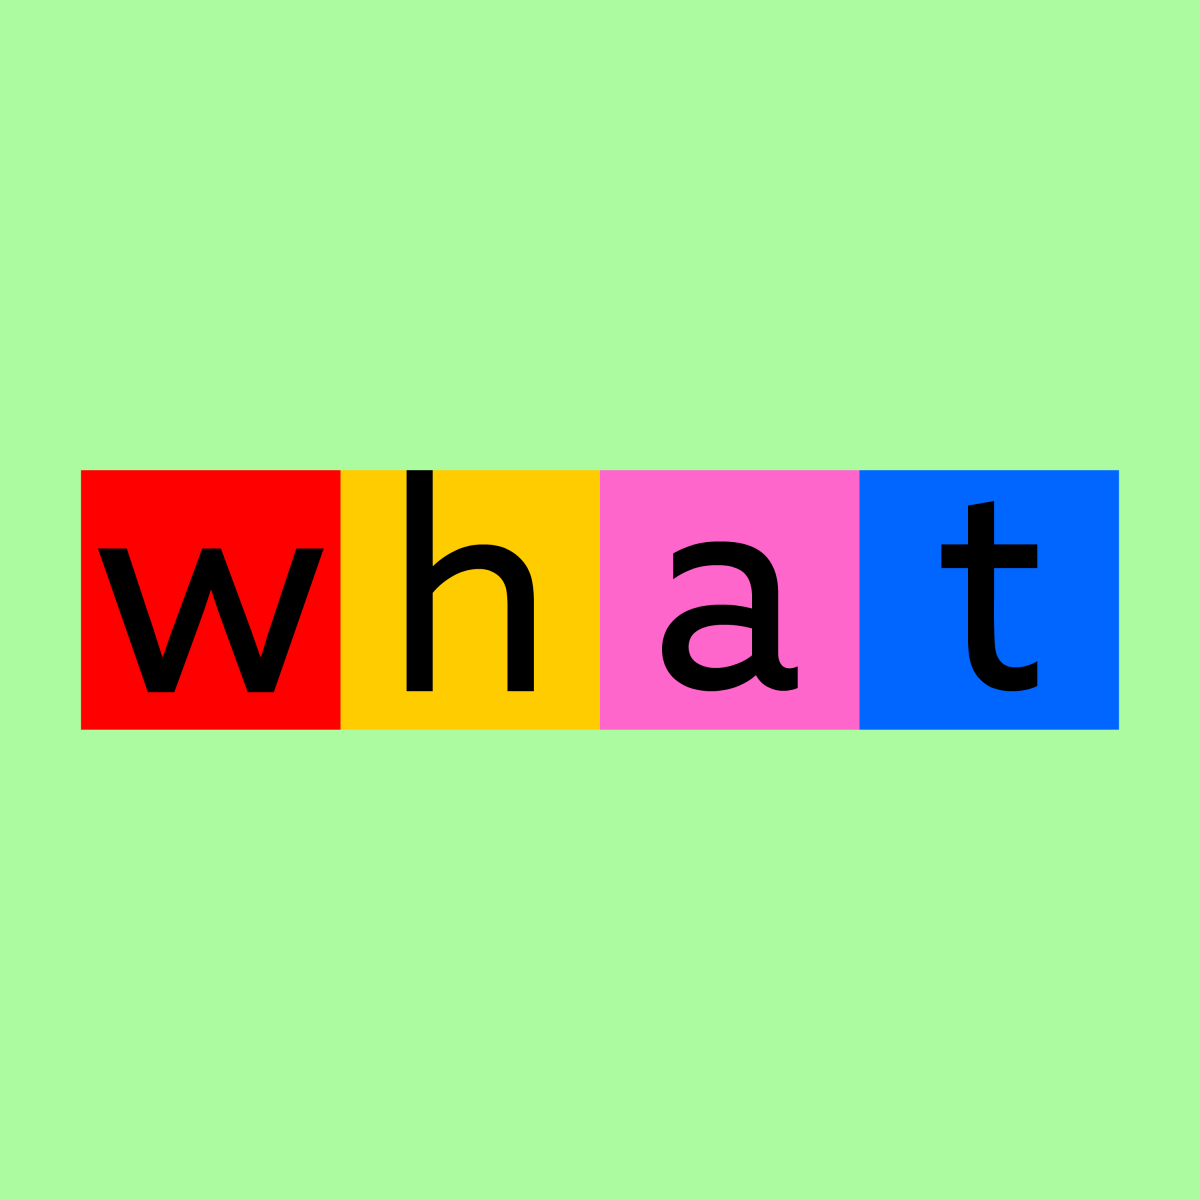 WHAT-FM Episode 1